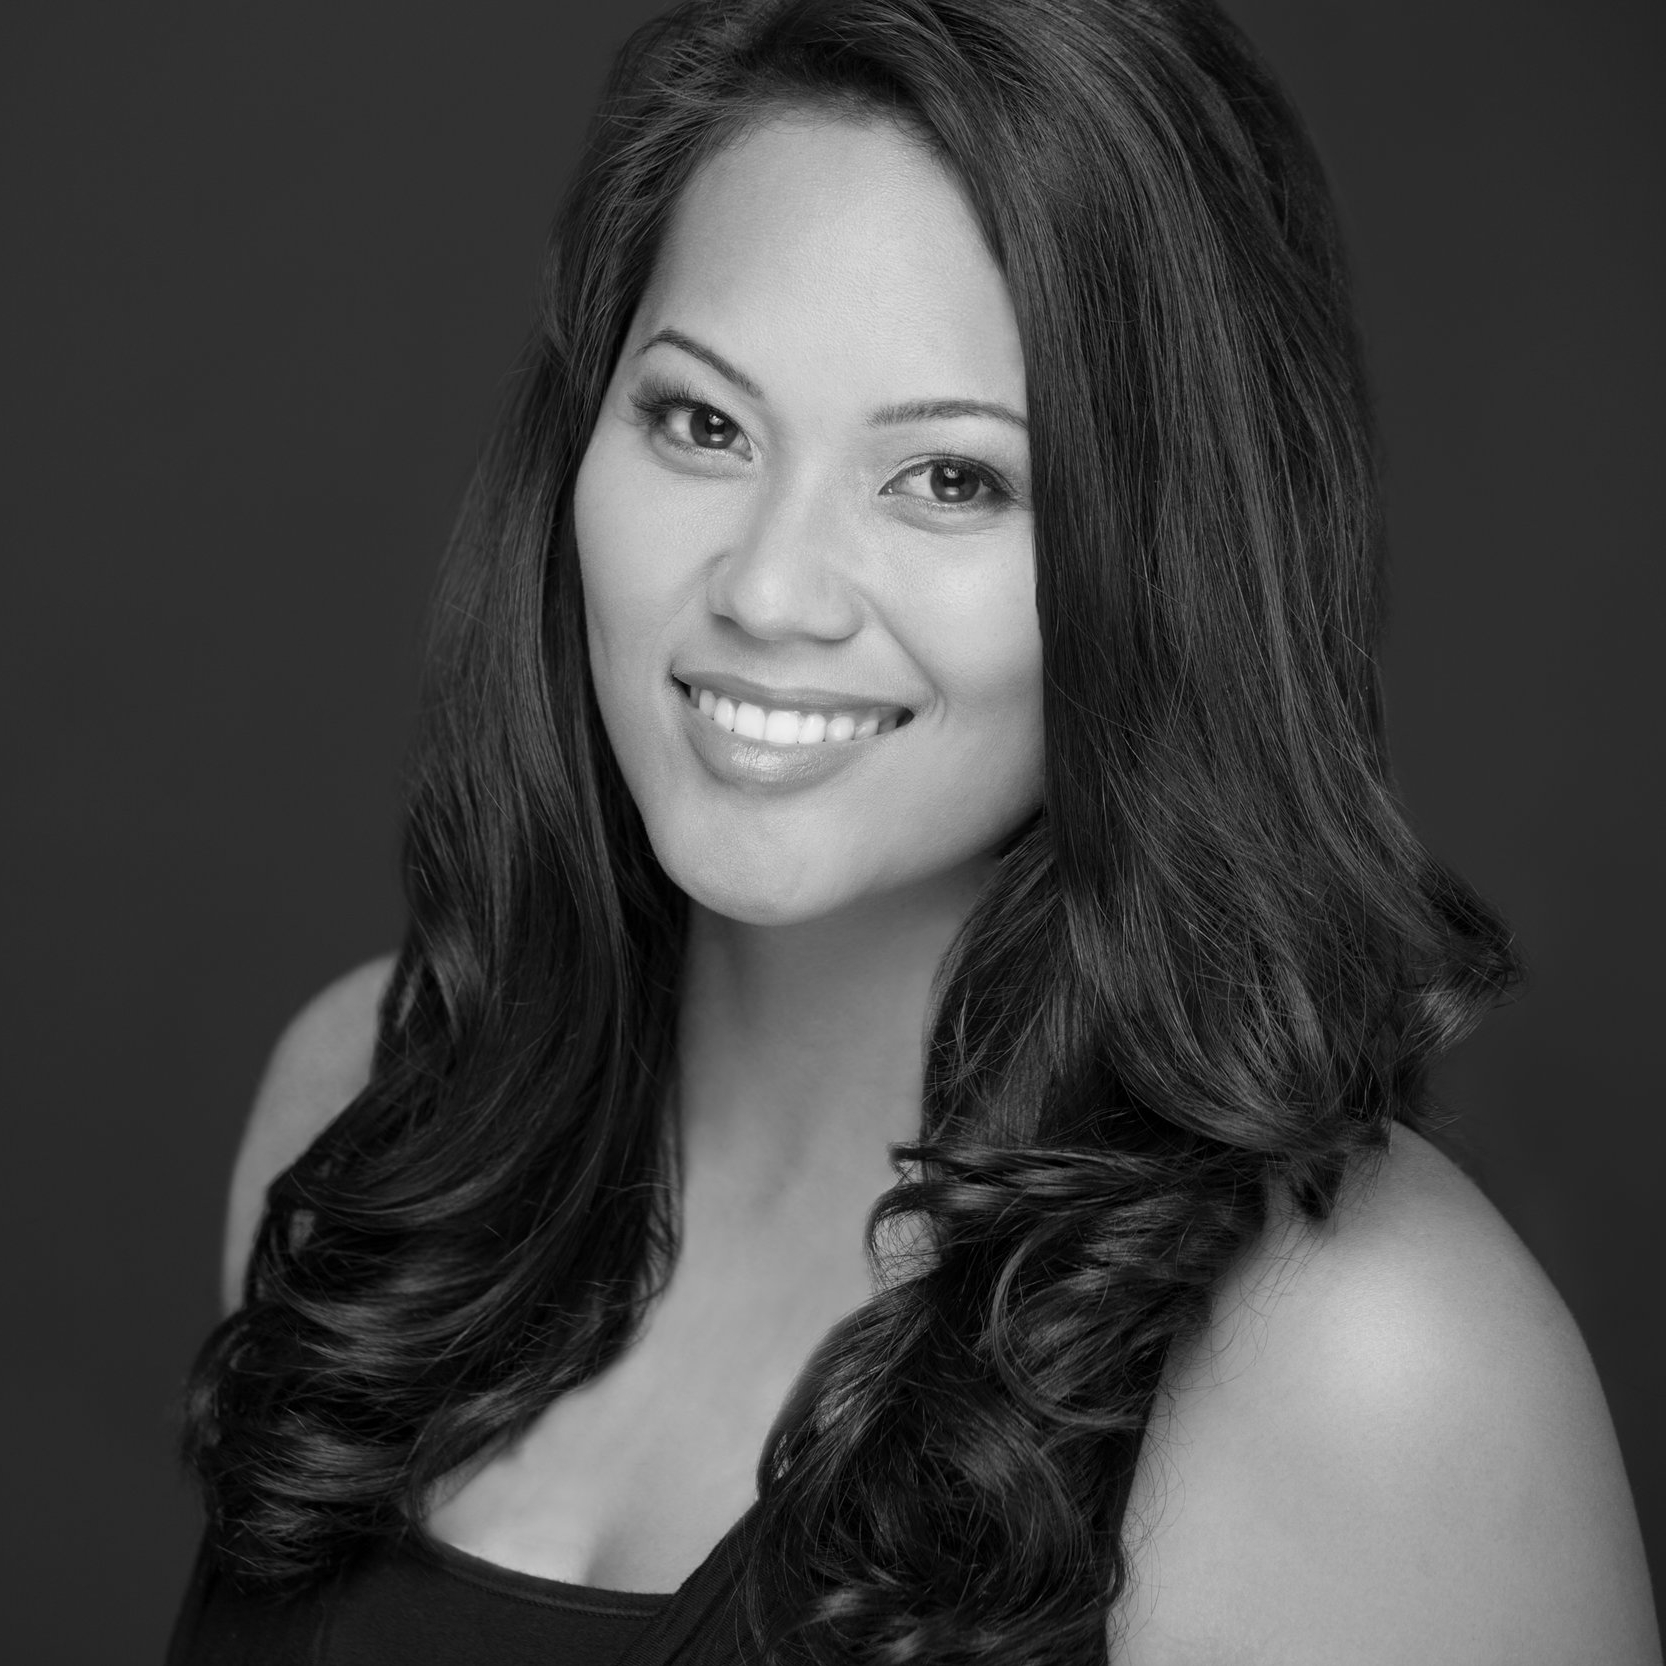 Tira fell in love with acting through her participation in high school and college theater on Oʻahu. This native Hawaiian actress went on to attend film & television classes at Scott Roger Studios, eventually landing roles on the hit television series Hawaii Five-0 & the upcoming indie short film  Mauka to Makai .